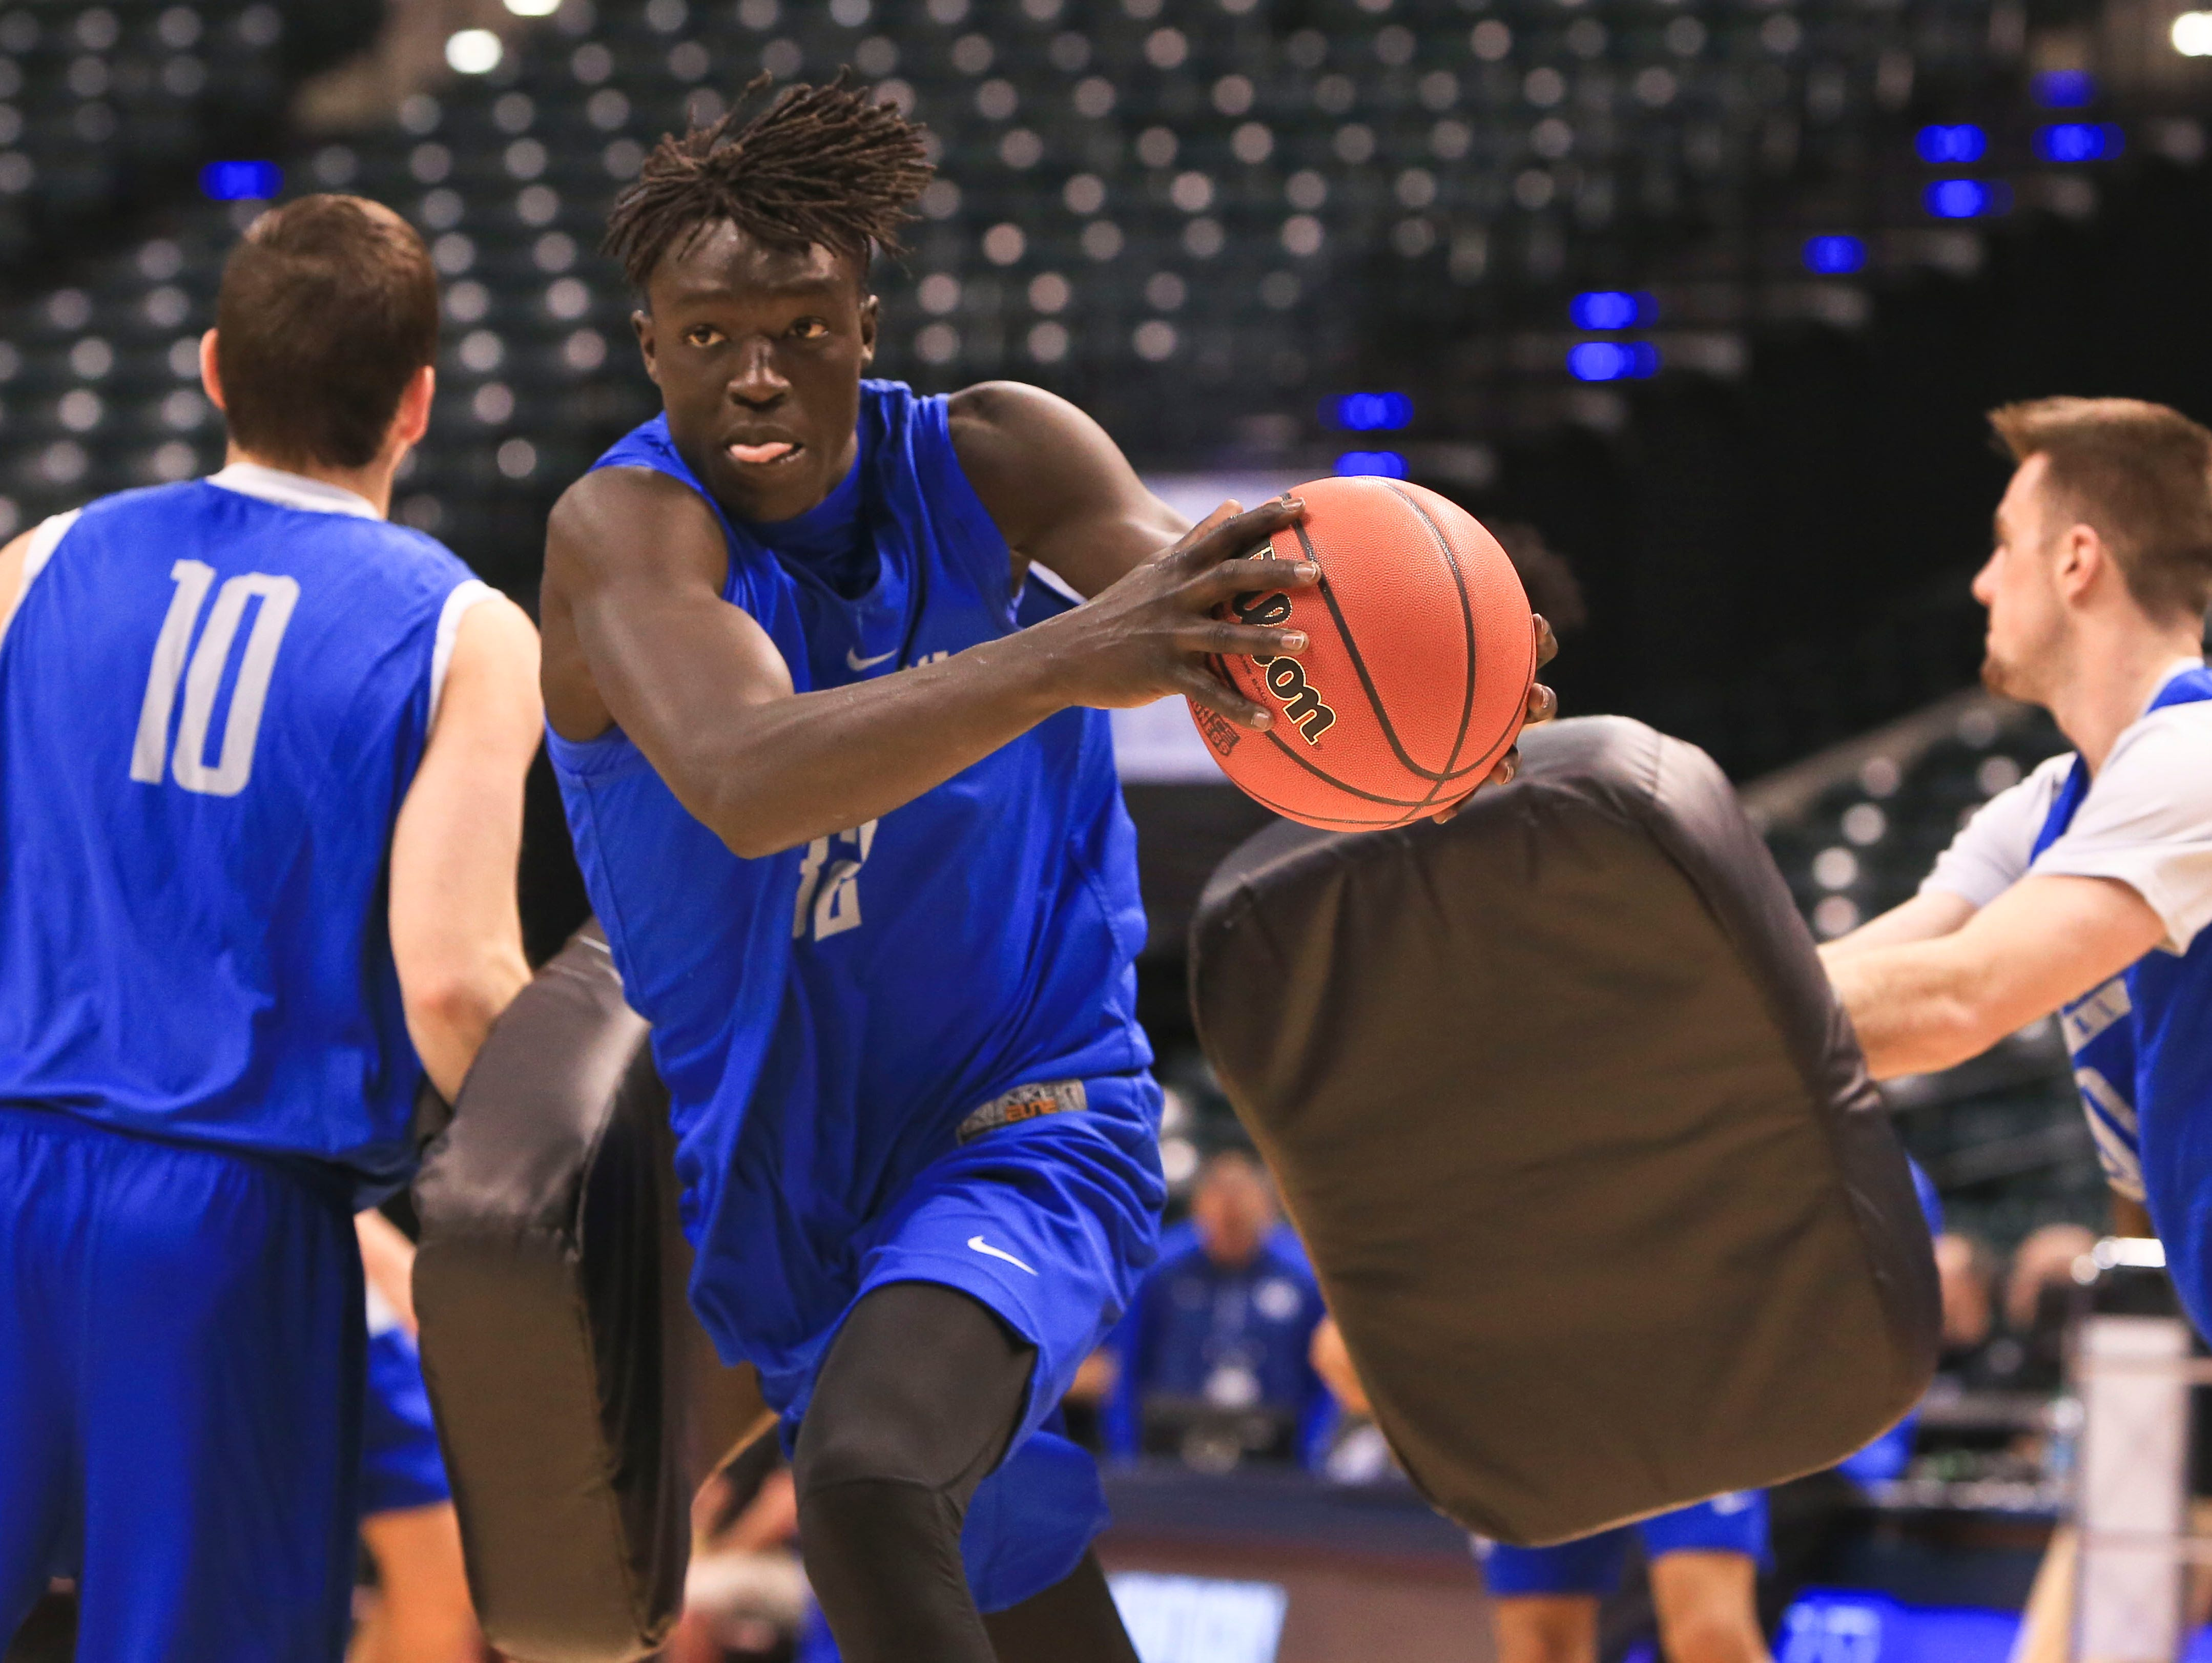 Kentucky's Wenyen Gabriel powers through a drill as Jonny David, left, and Dillon Pulliam use pads to simulate pressuring defense during practice Thursday afternoon at Bankers Life Fieldhouse before the start of the team's NCAA tournament play. The team takes on Northern Kentucky Friday evening at 9:40 pm.